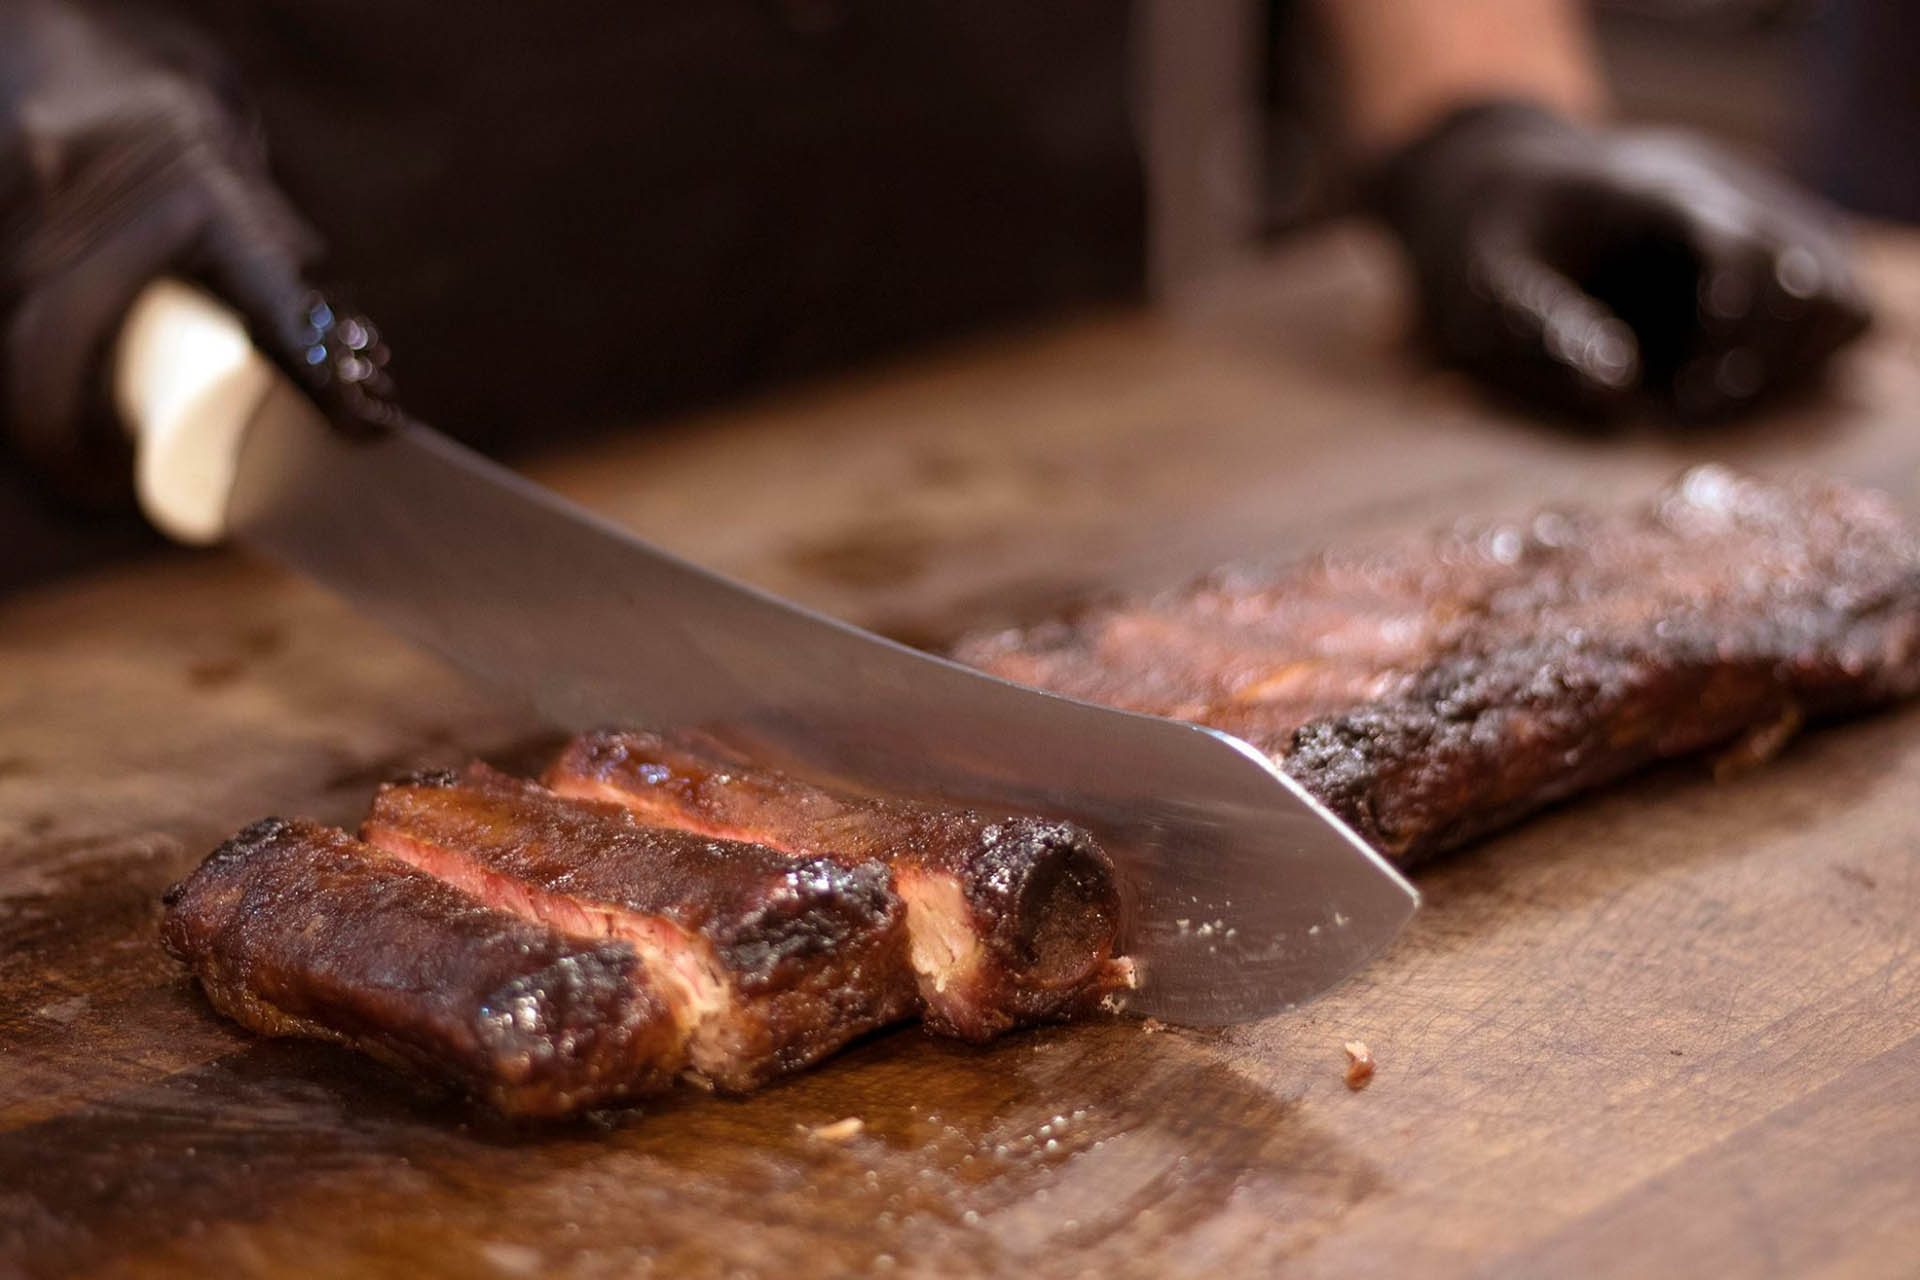 Dickey's Barbecue Pit Serves Up Pit-Smoked Barbecue to Rock Island